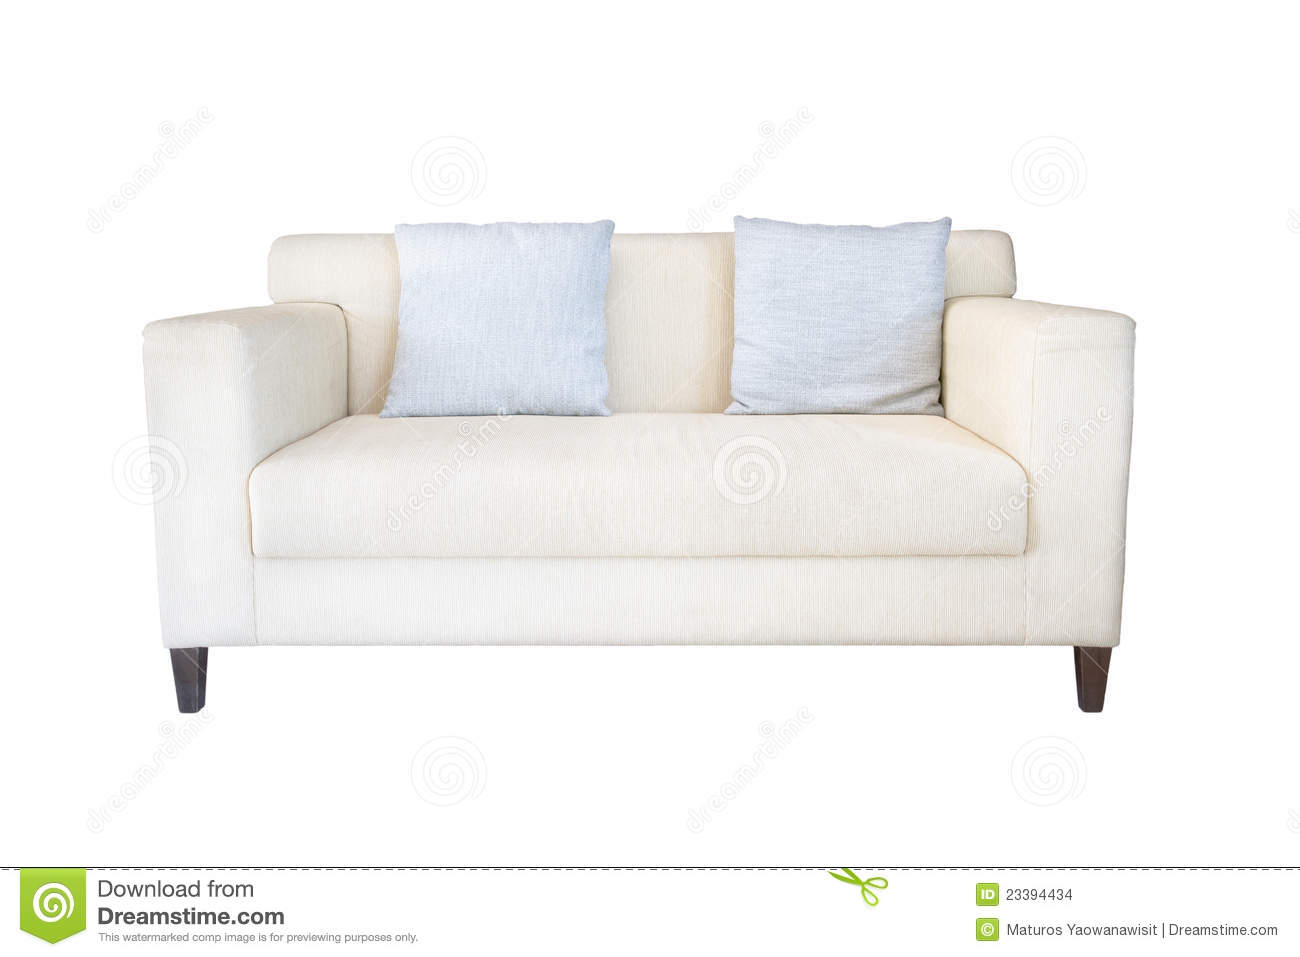 White sofa stock images image 23394434 - Images of sofa ...